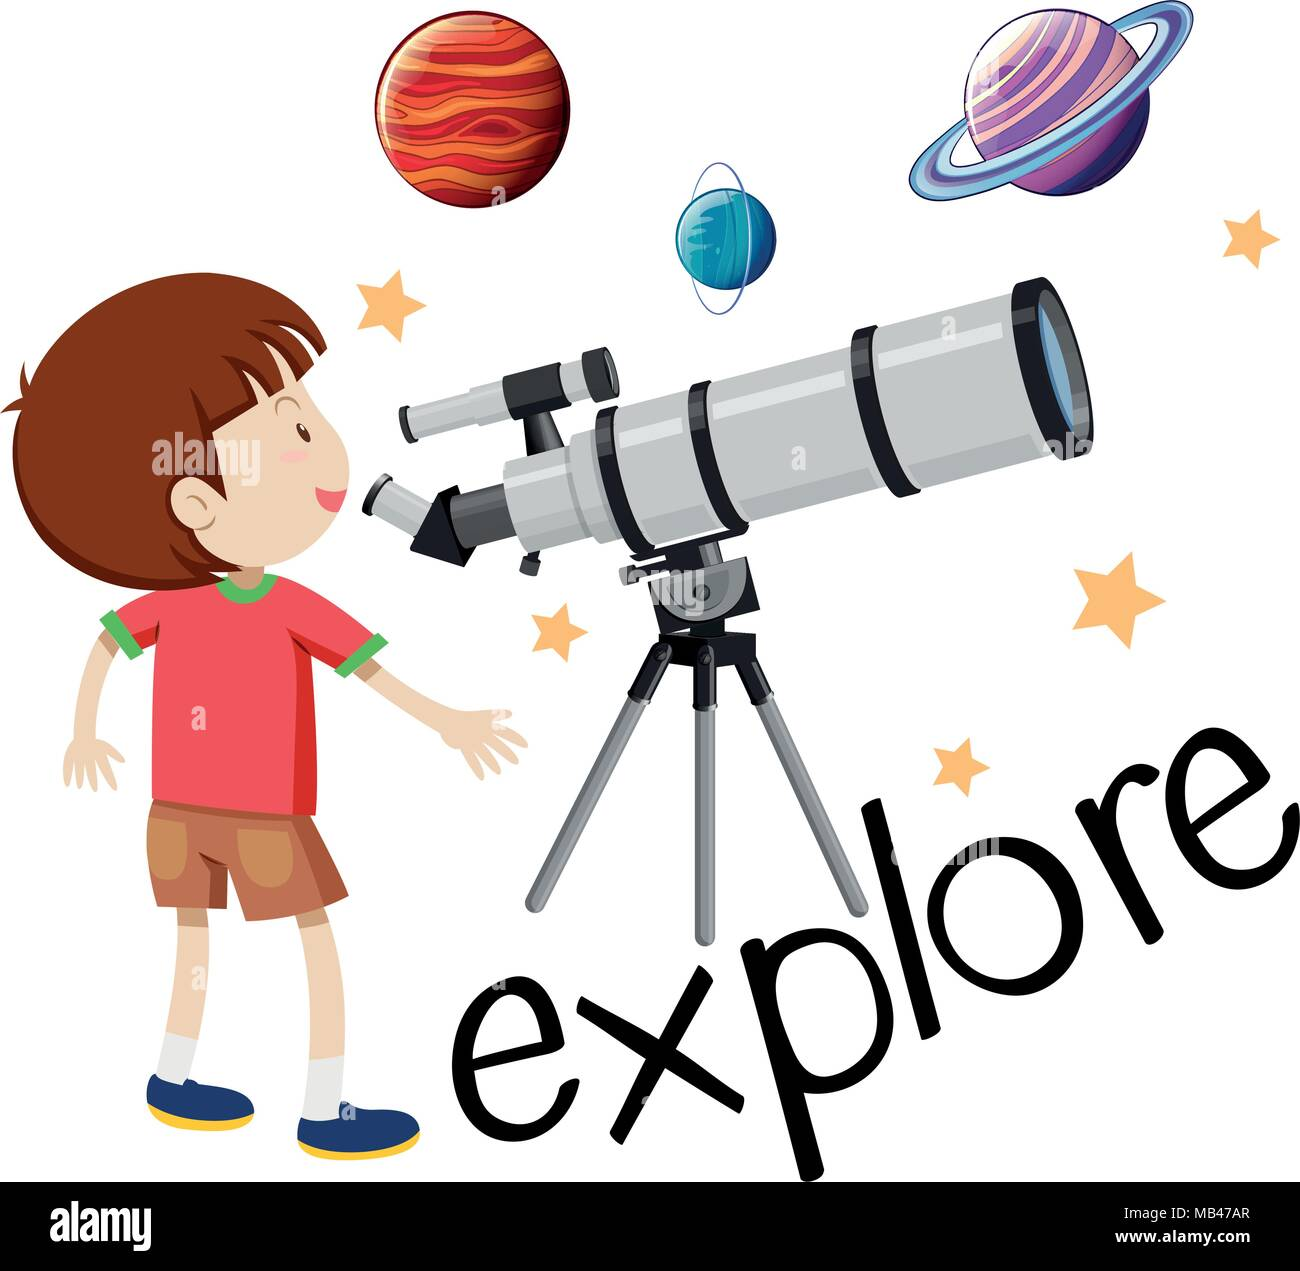 Flashcard for explore with kid looking through telescope illustration - Stock Vector